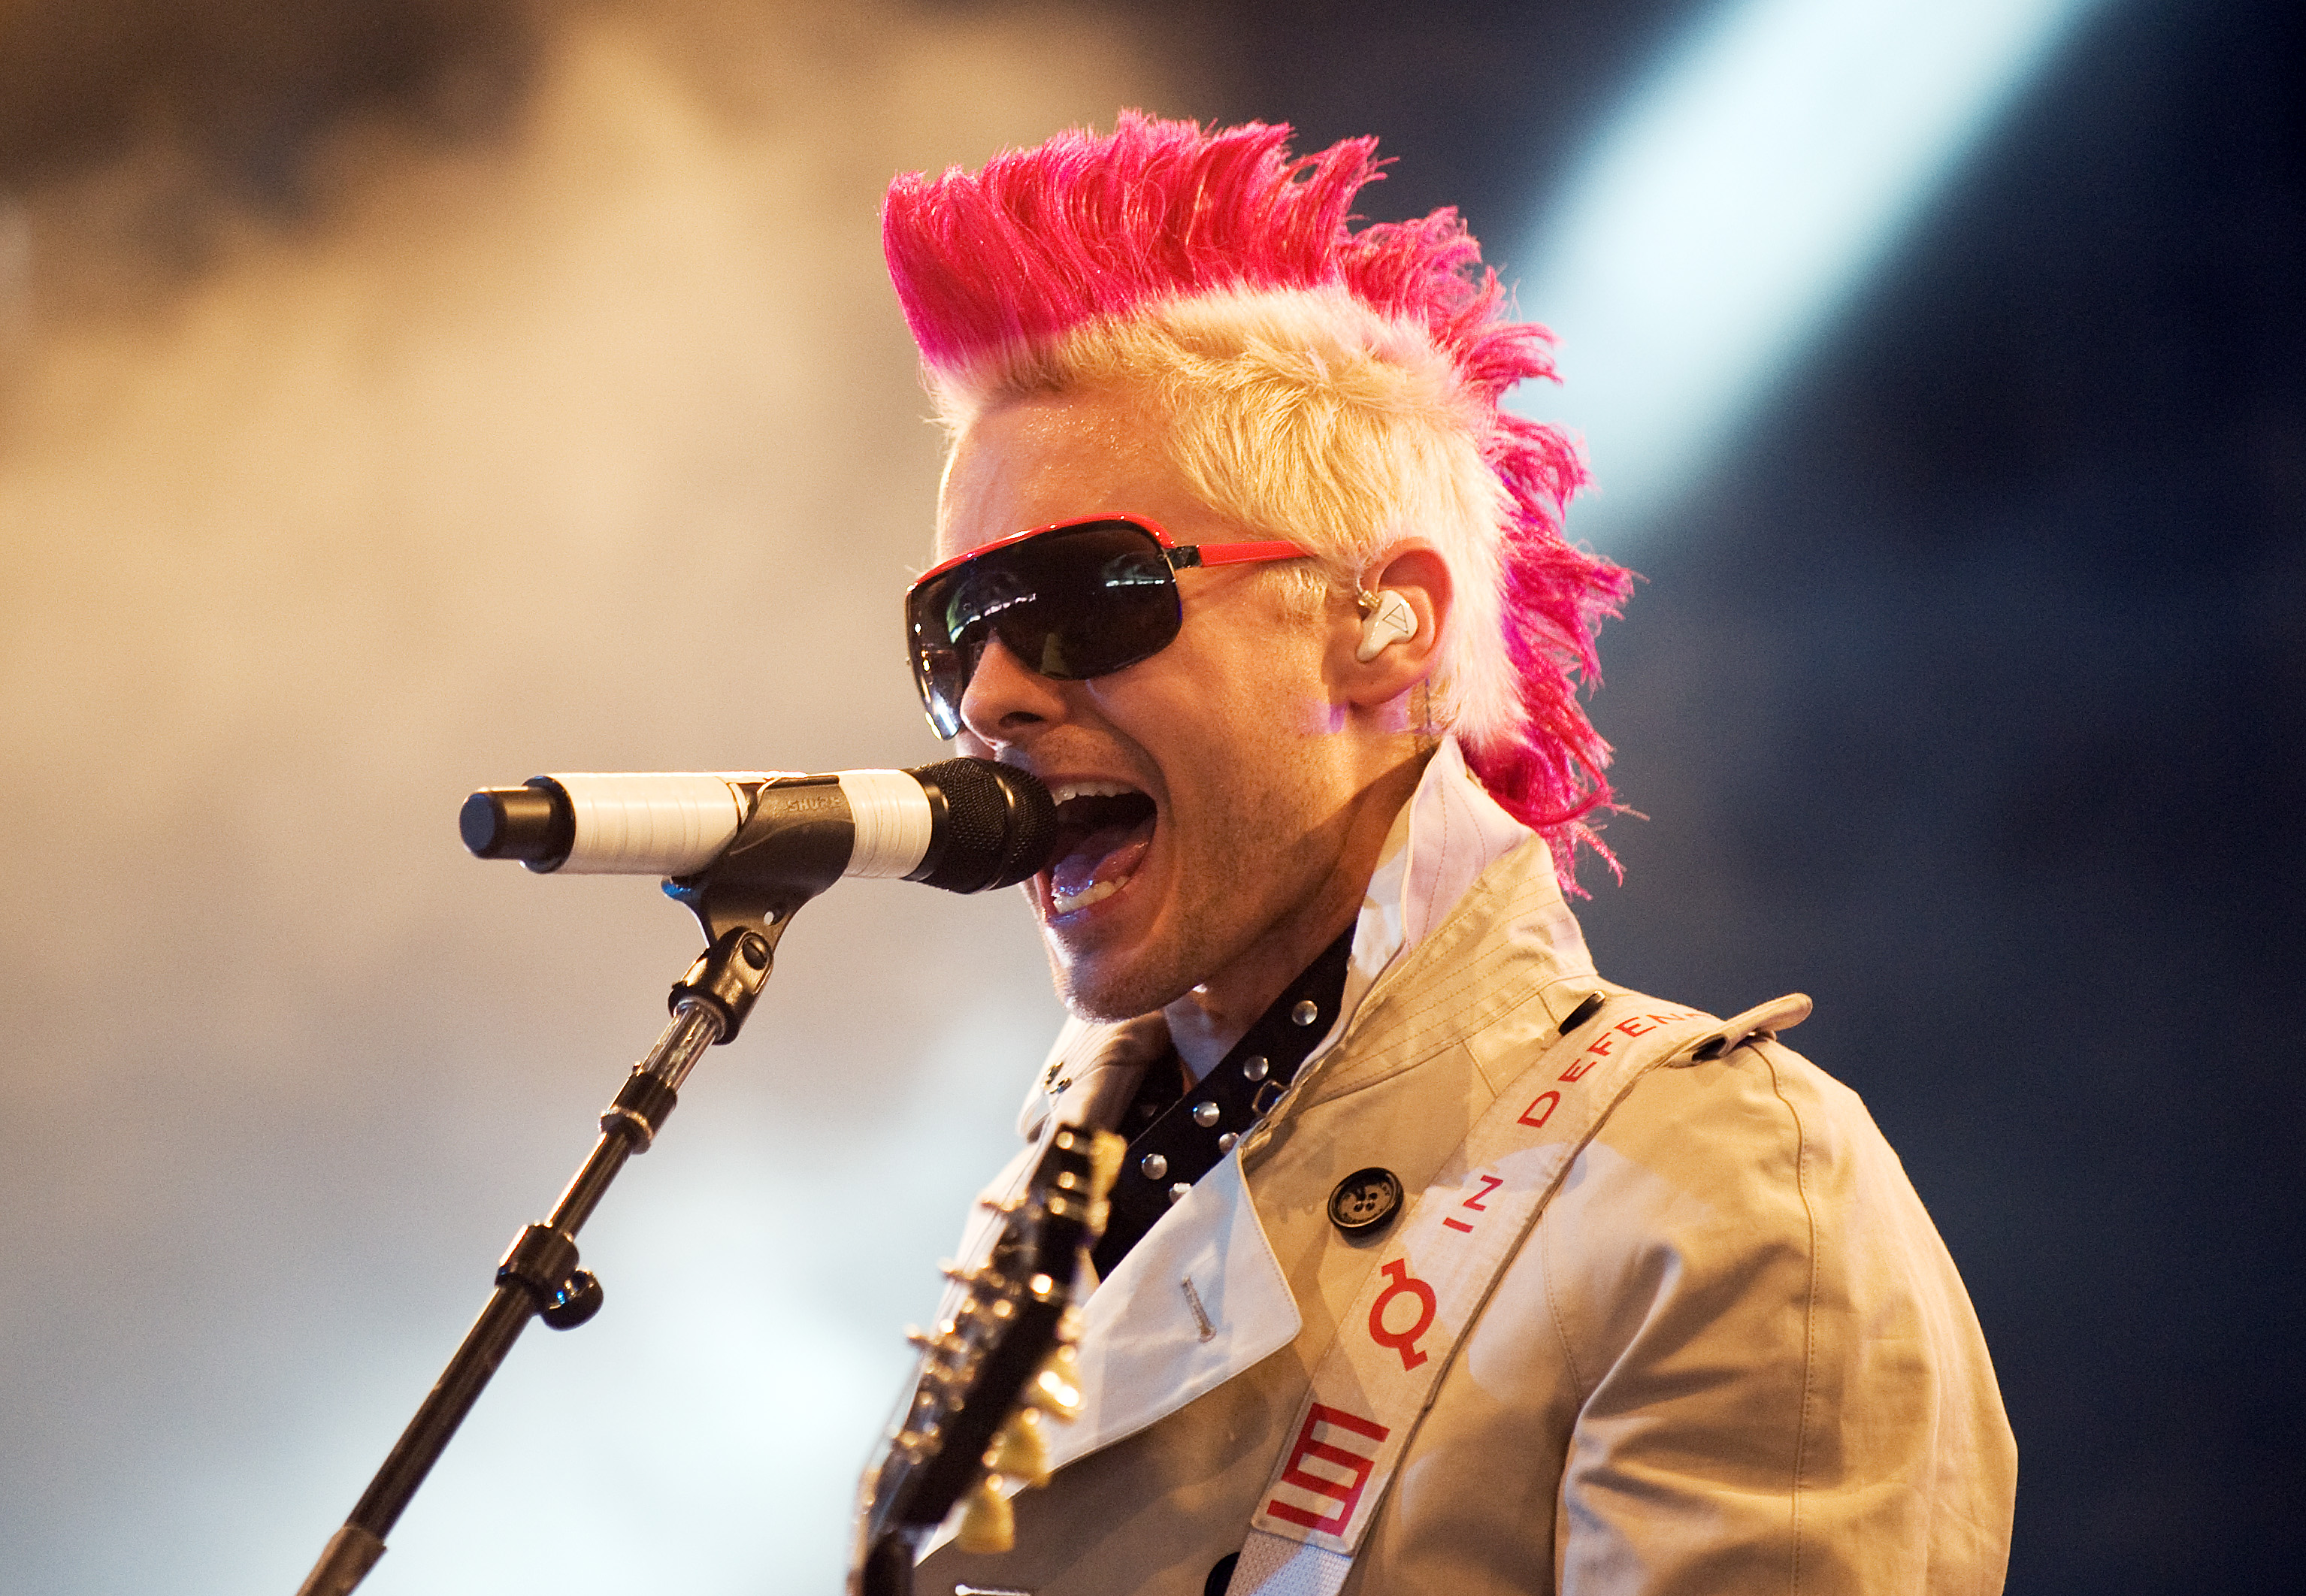 Not long ago, Jared had a pink Mohawk. Here he is performing in Wales with 30 Second to Mars.